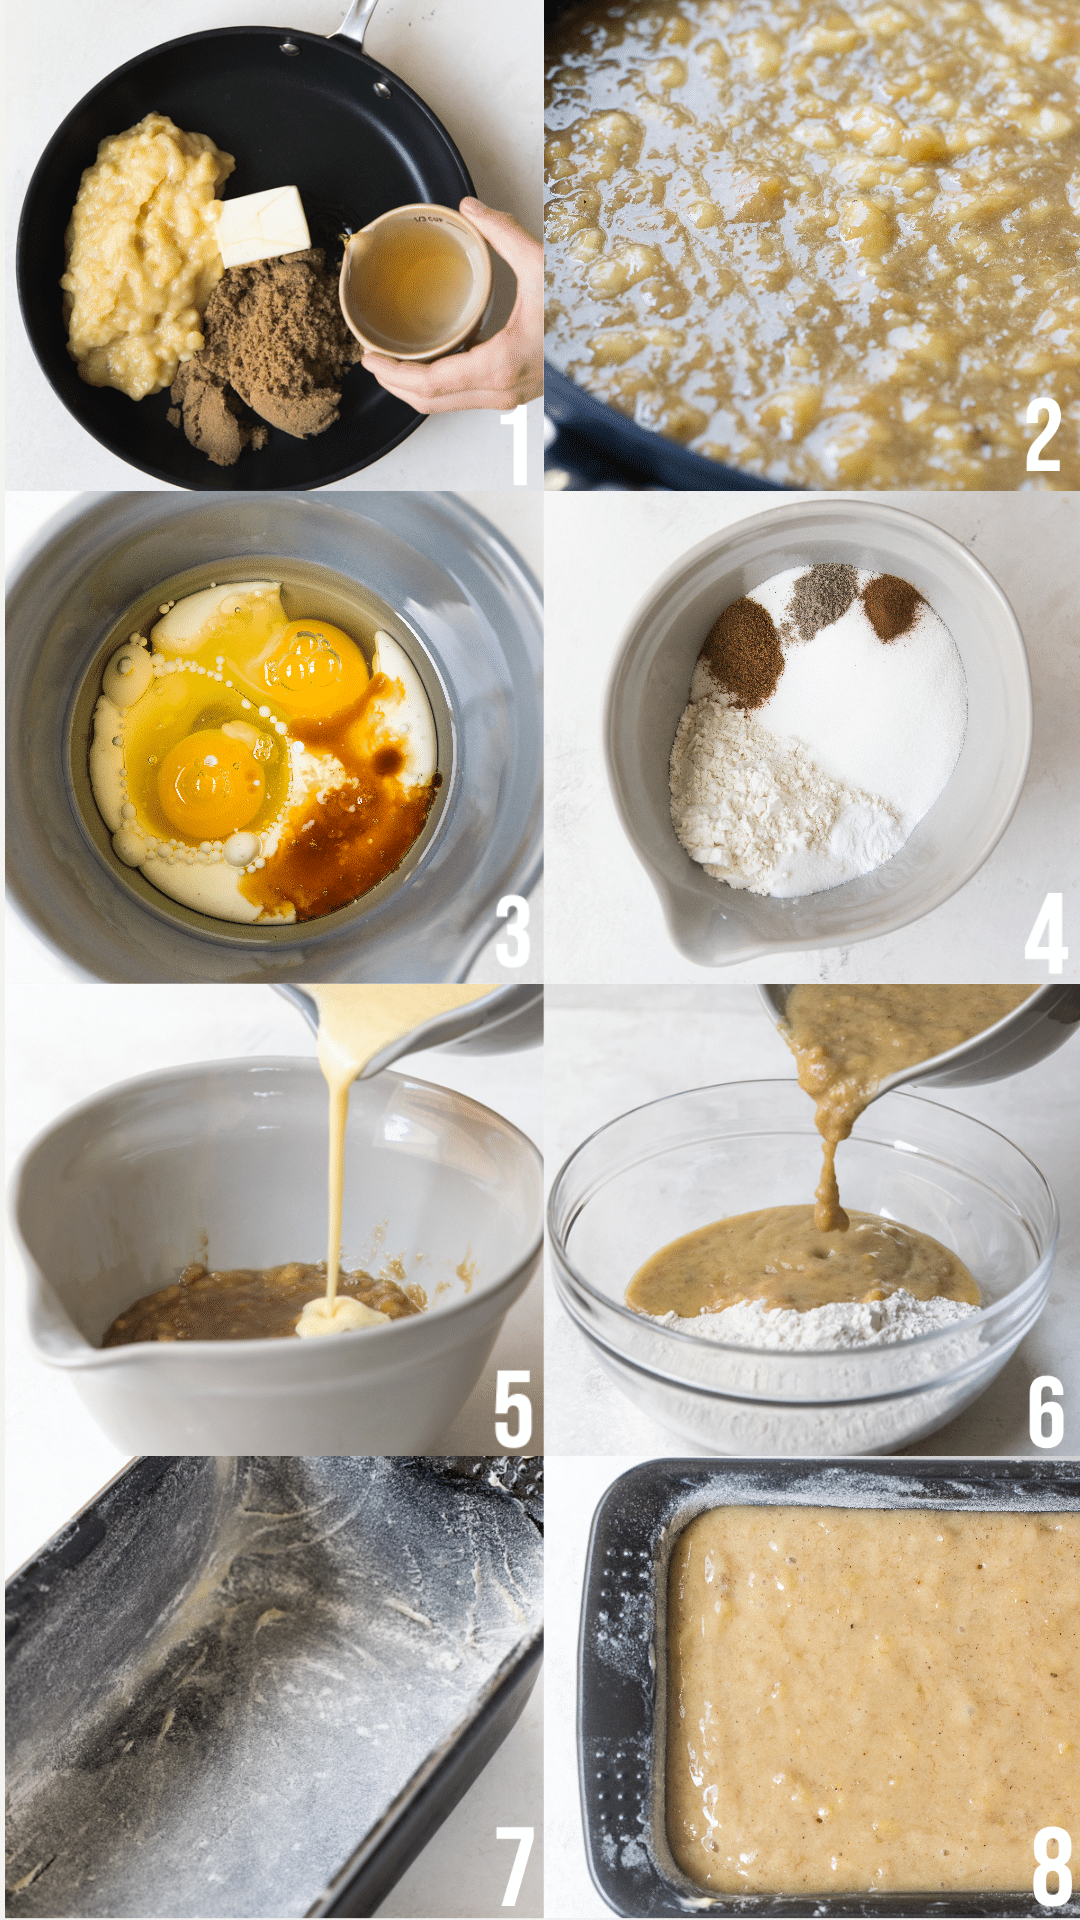 step by step photos of making banana bread